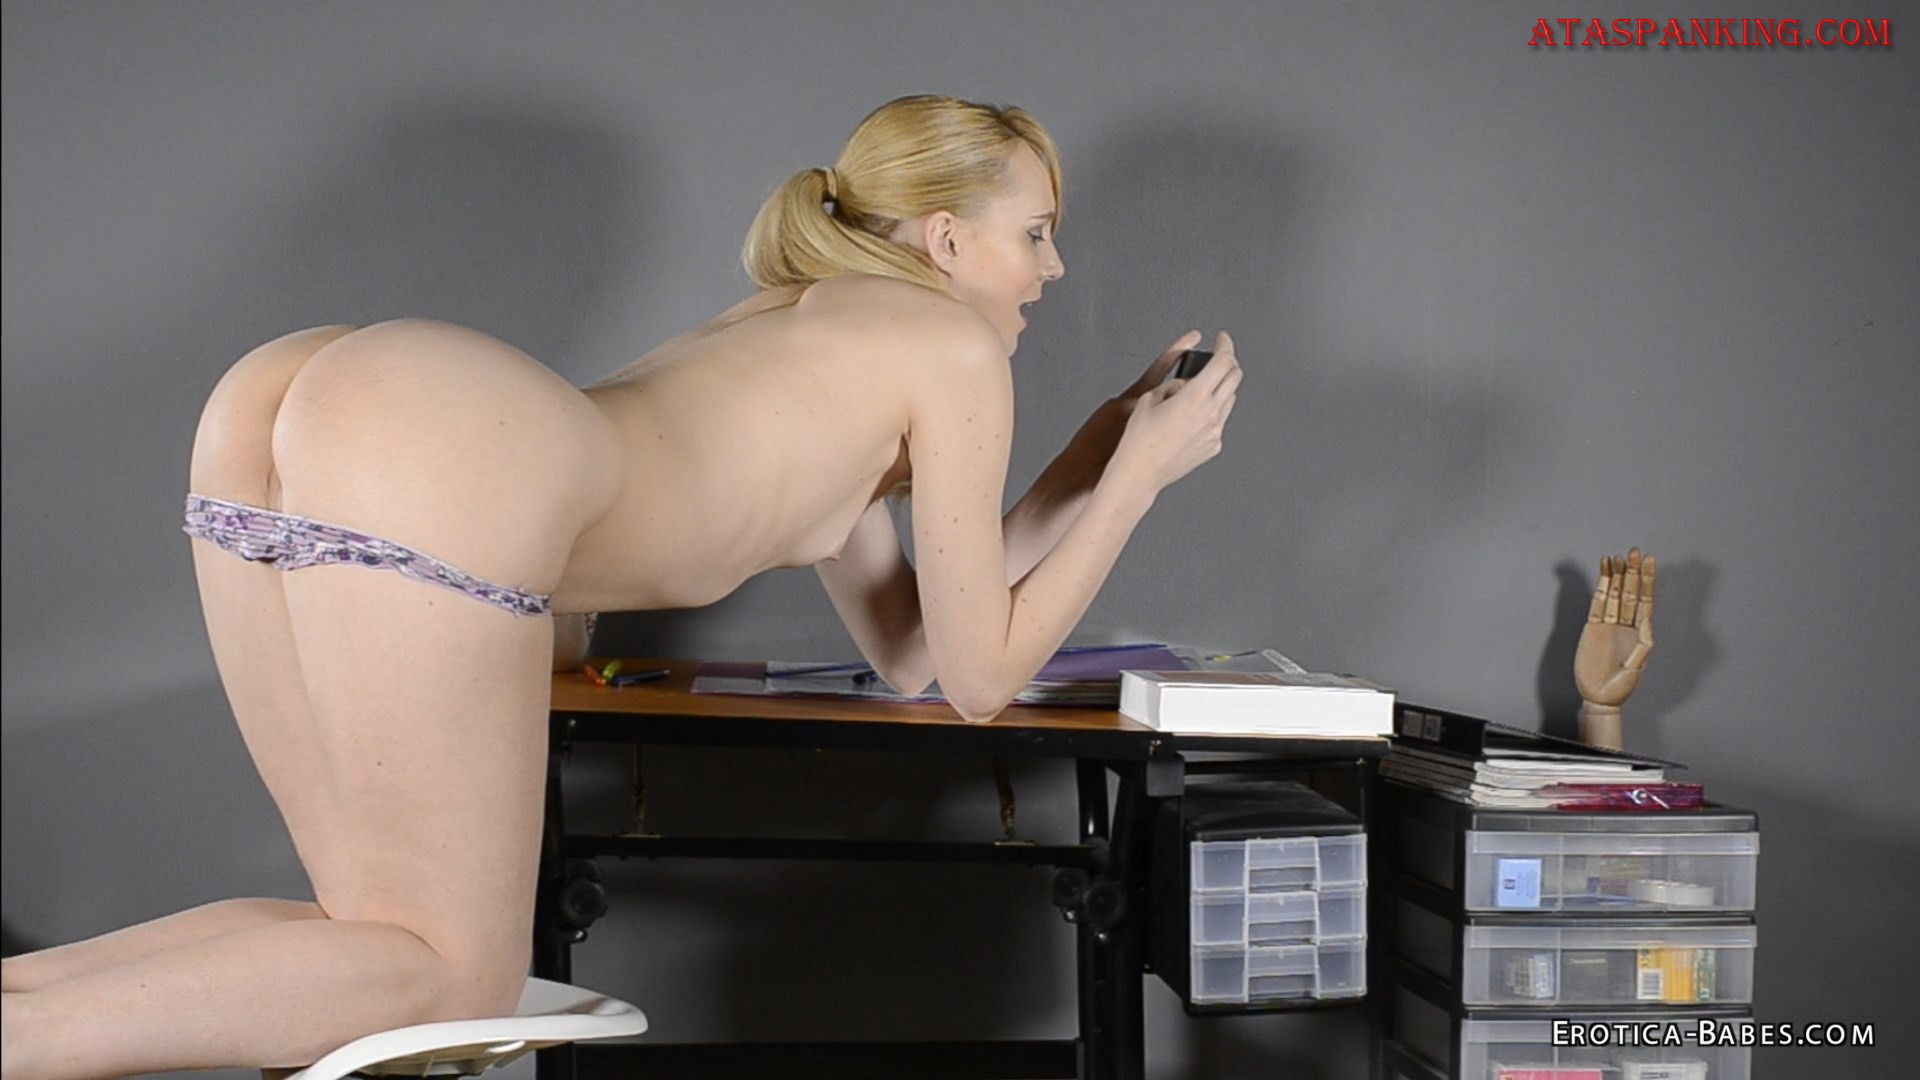 Ruler spanks a pussy quality porn